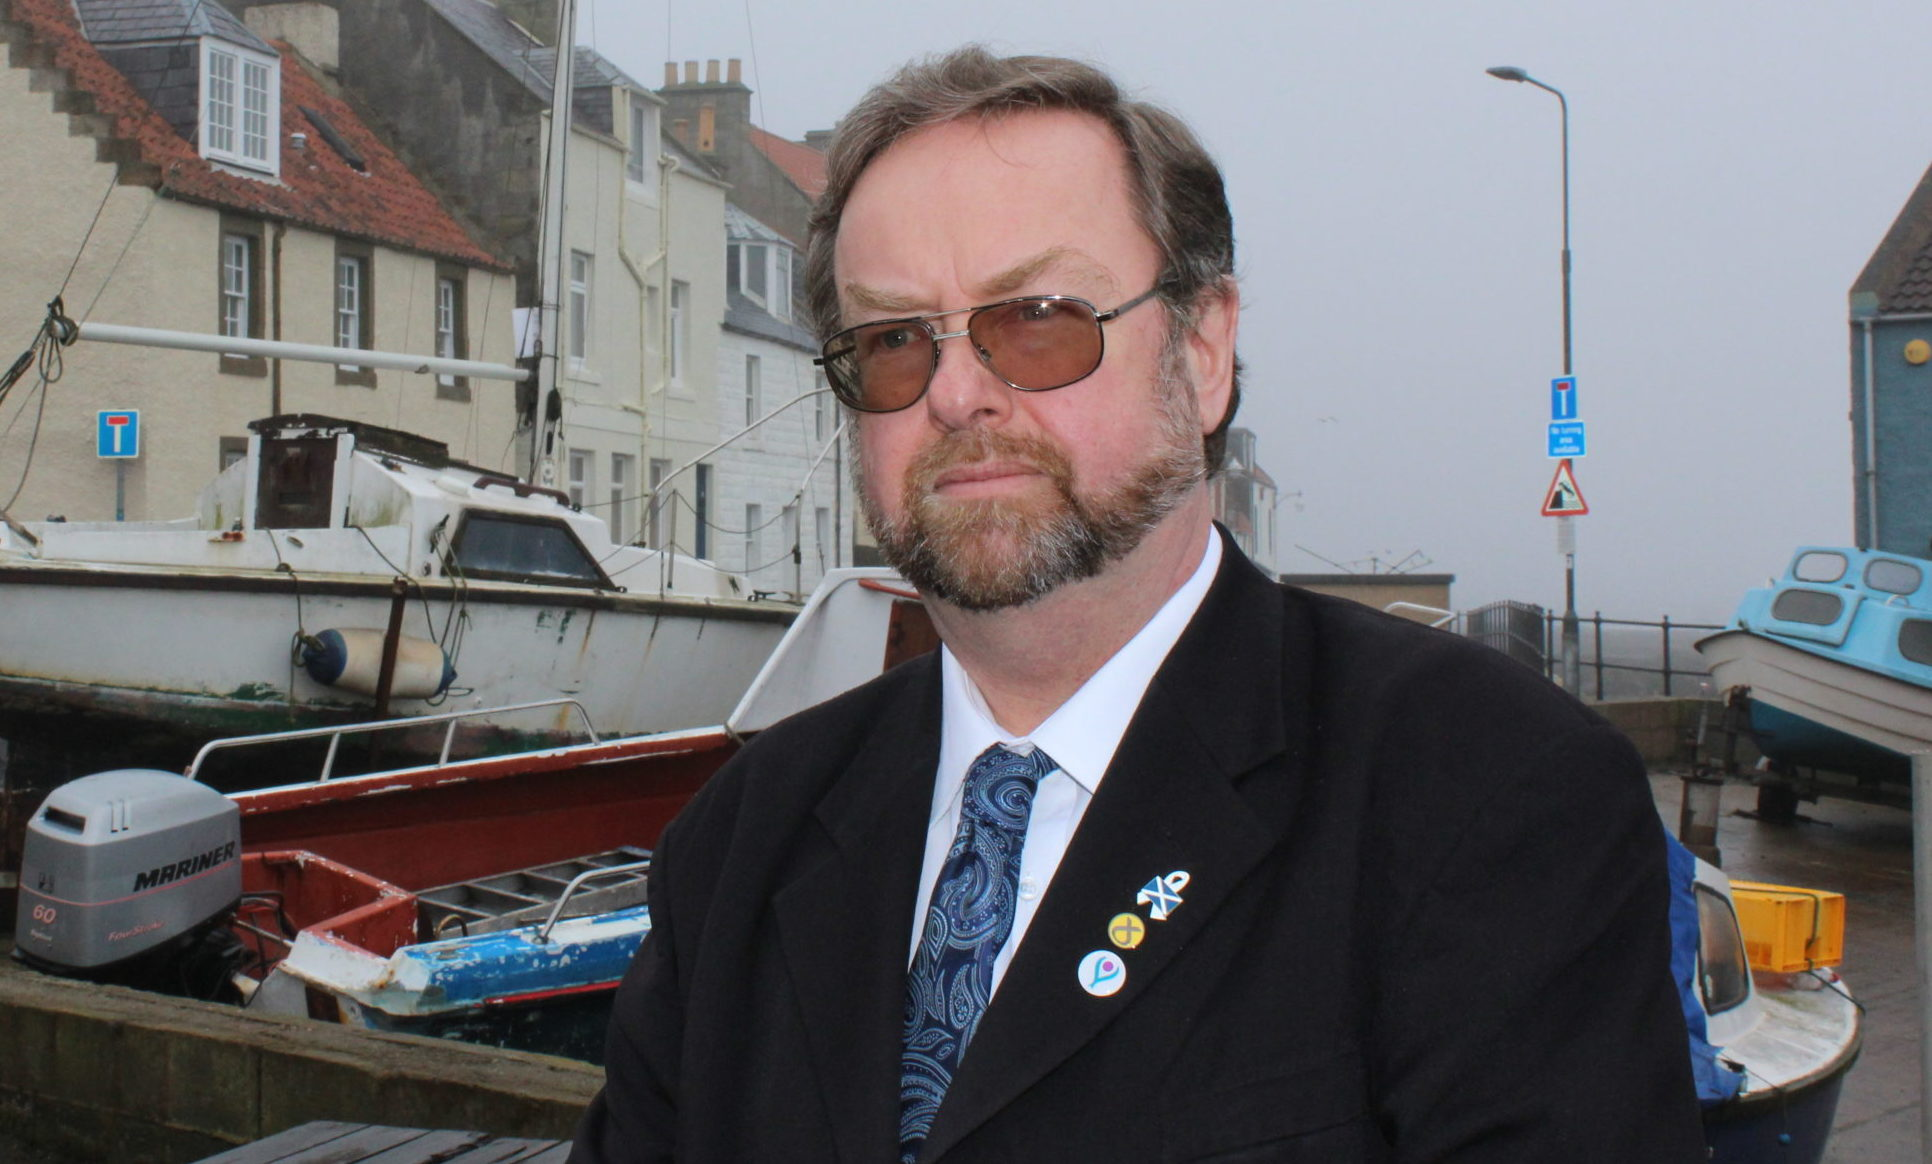 Councillor John Docherty has re-registered as a nurse to help the Covid-19 battle.